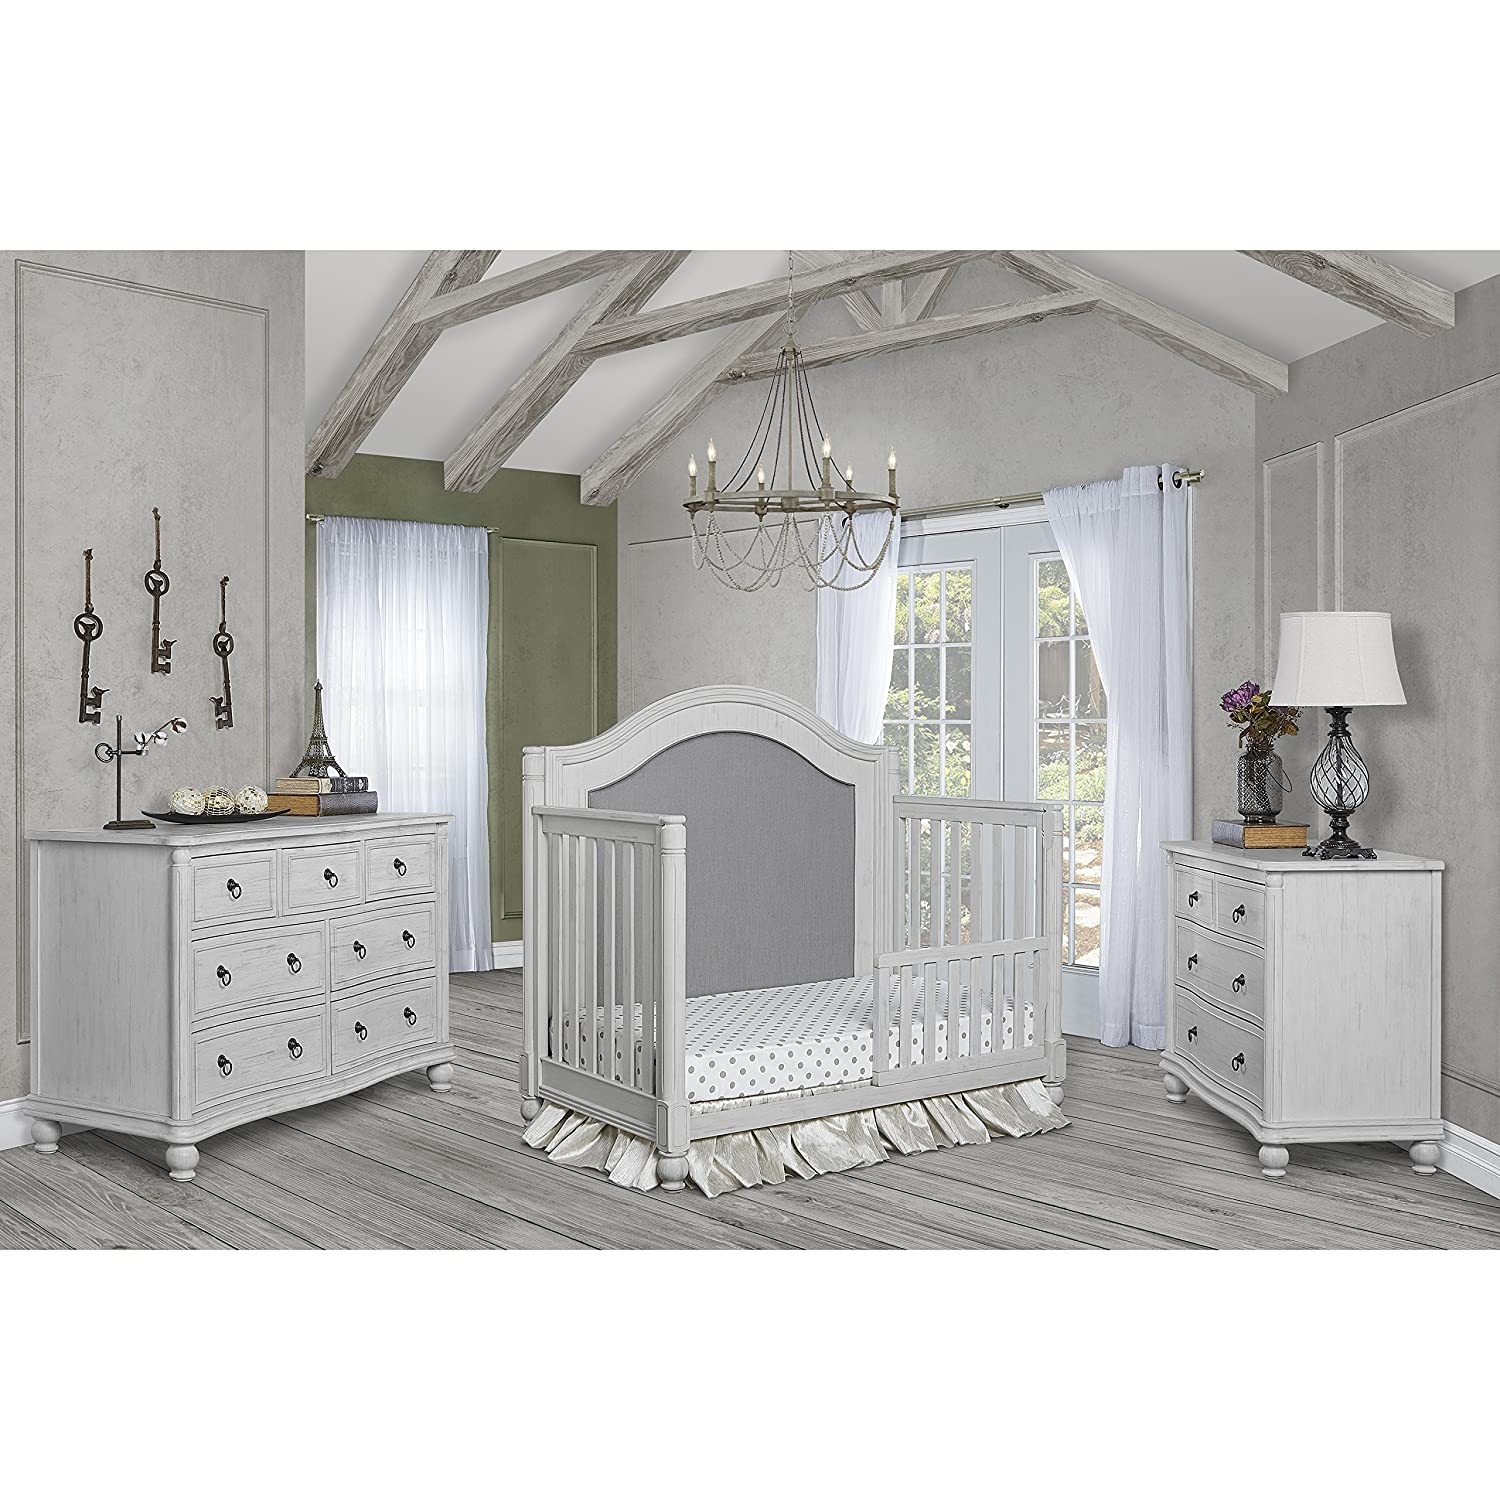 Evolur Kendal Curve Top 5 in 1 Convertible Crib, Antique Grey Mist